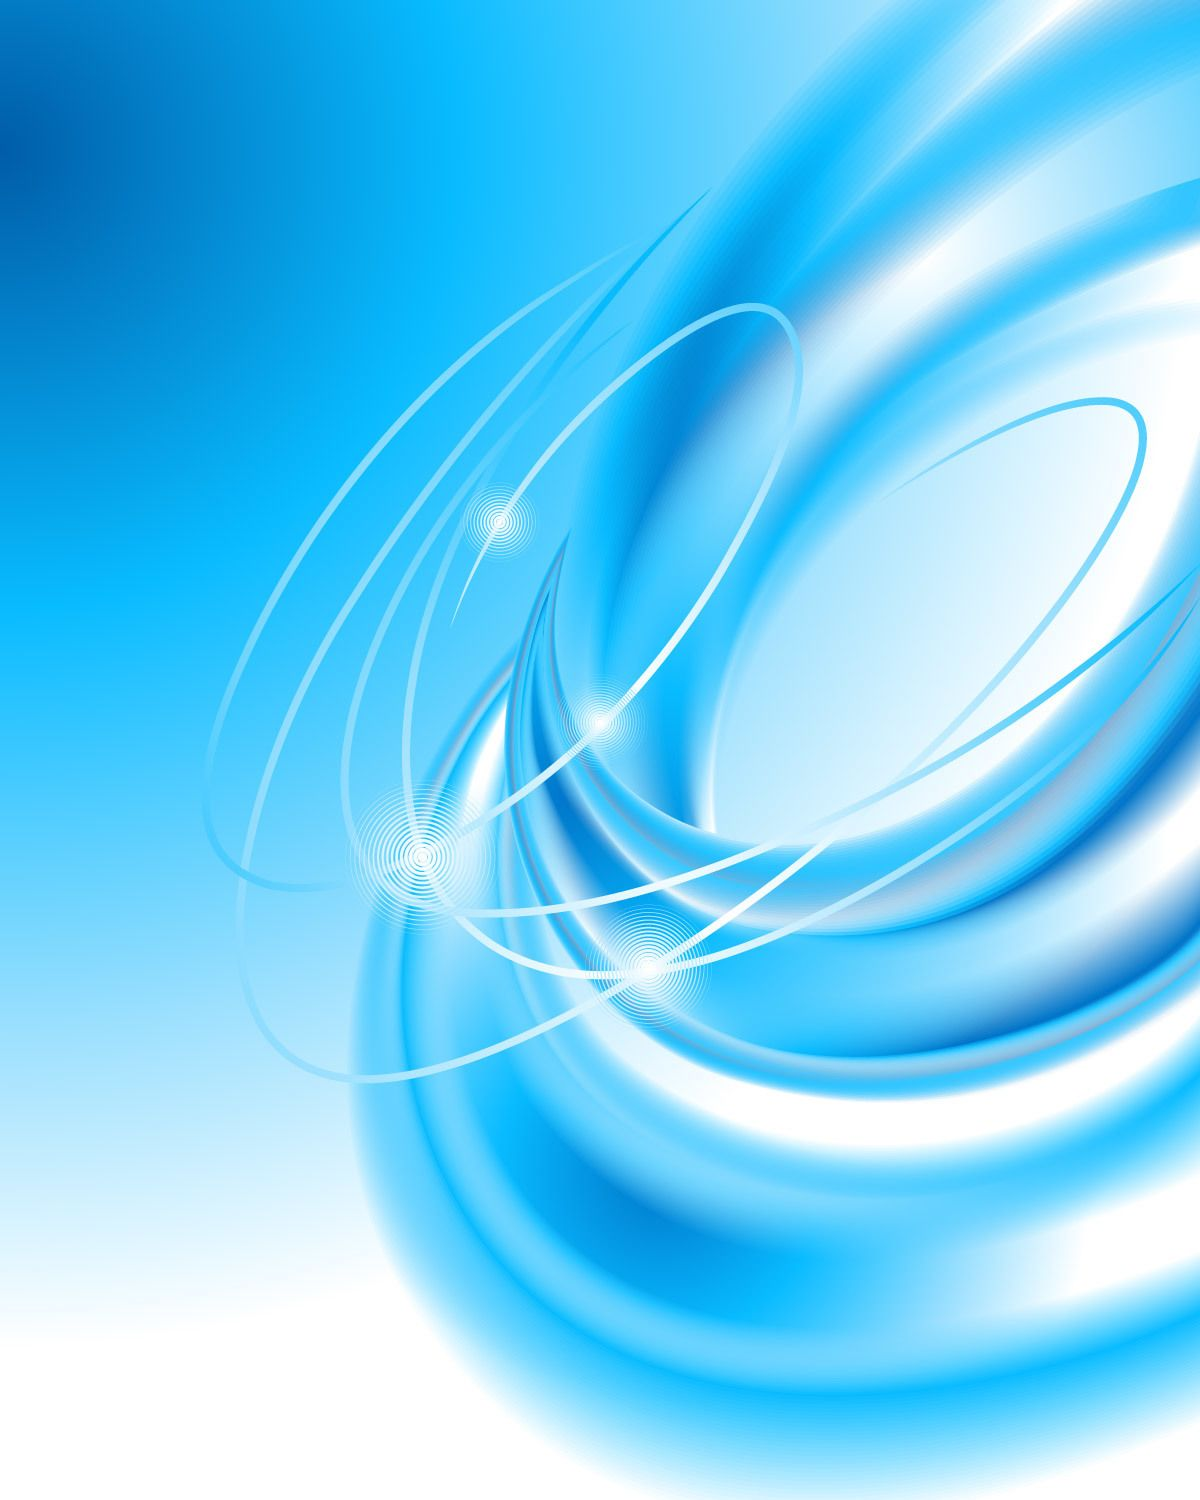 Creative Blue Vortex Spin Blended Background